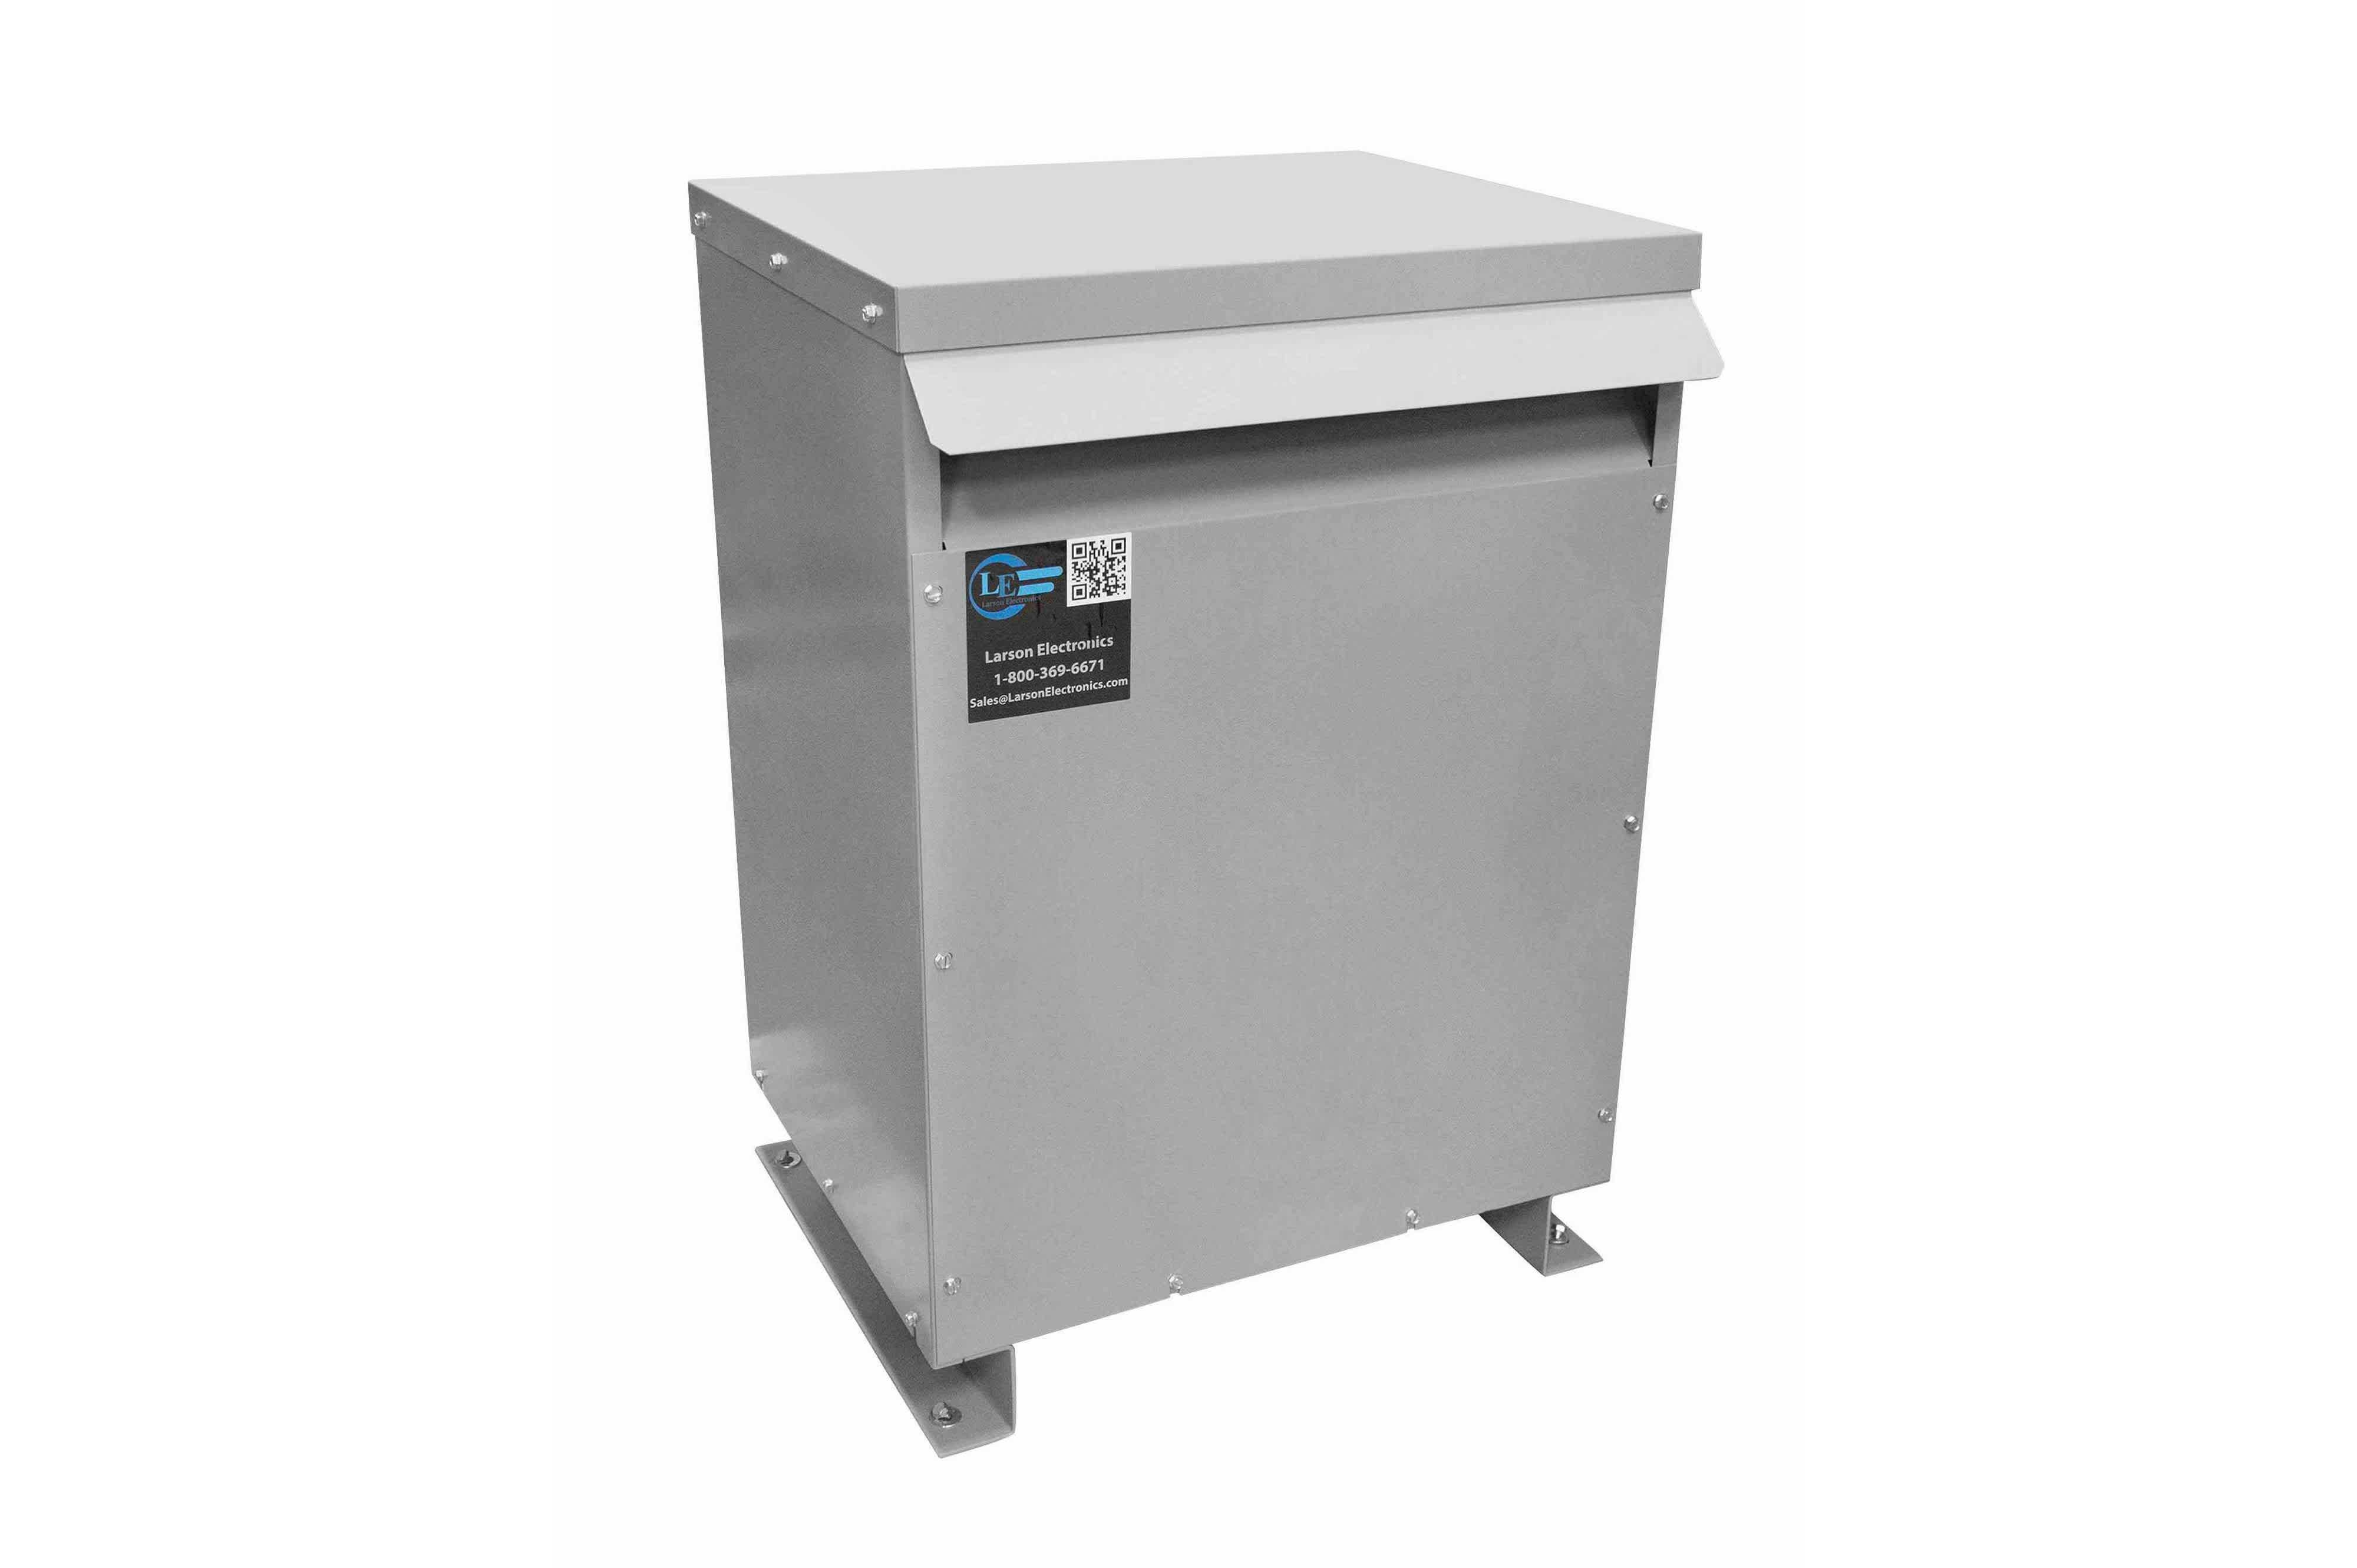 80 kVA 3PH DOE Transformer, 208V Delta Primary, 240V/120 Delta Secondary, N3R, Ventilated, 60 Hz